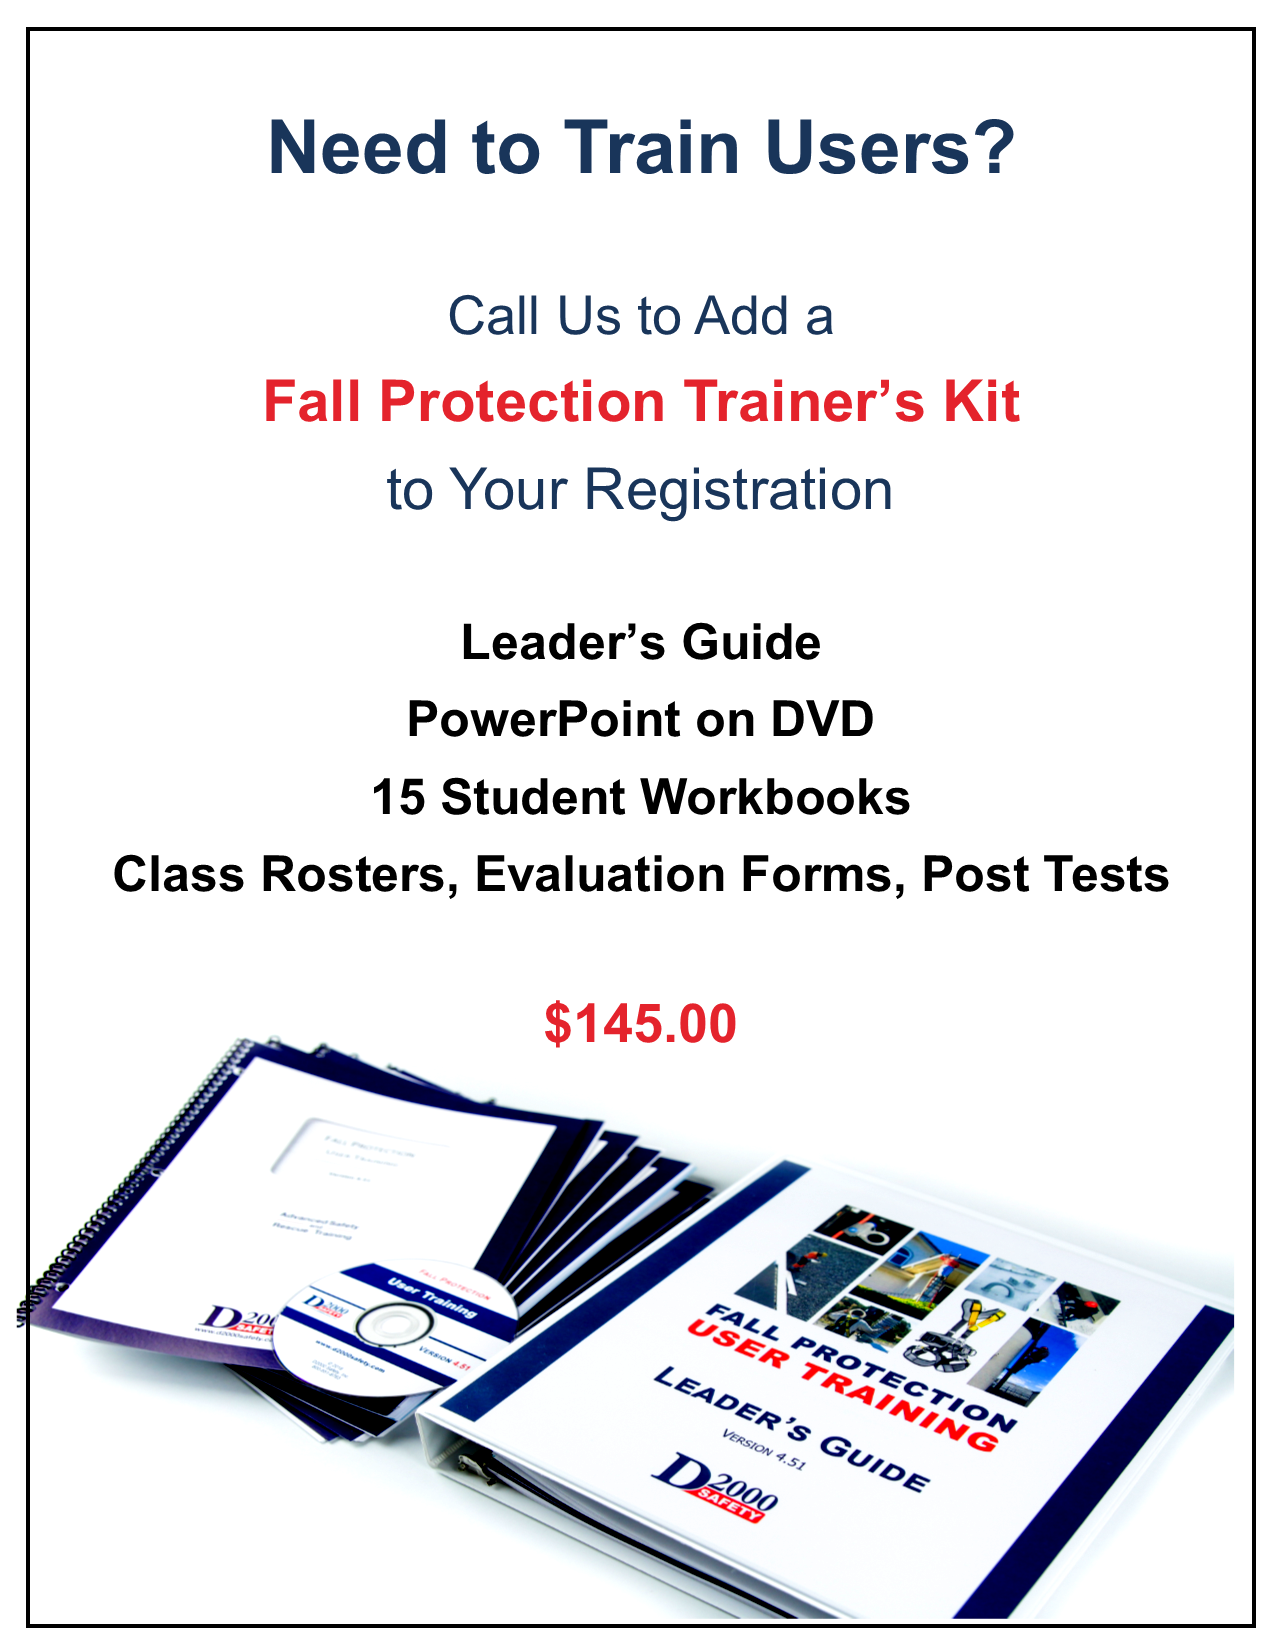 Fall Protection Trainers Kit